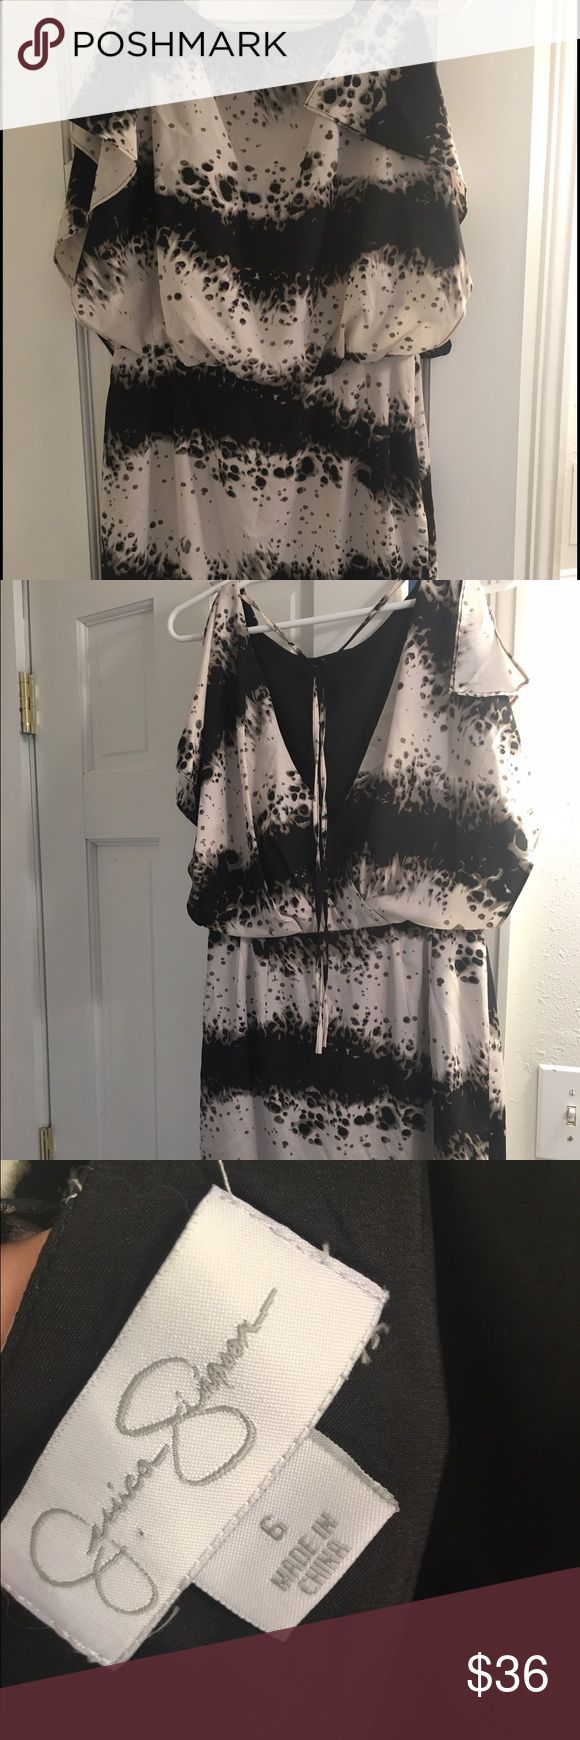 Jessica Simpson Dress Almost new Jessica Simpson size 6 dress with a tie at the top of the back, split sleeves, deep v back and unique cream and black print. Flowy sleeves and sinched at the waist. Hits above the knees. Perfect with classic black pumps for work or stilettos for a wedding or semi formal affair. Jessica Simpson Dresses